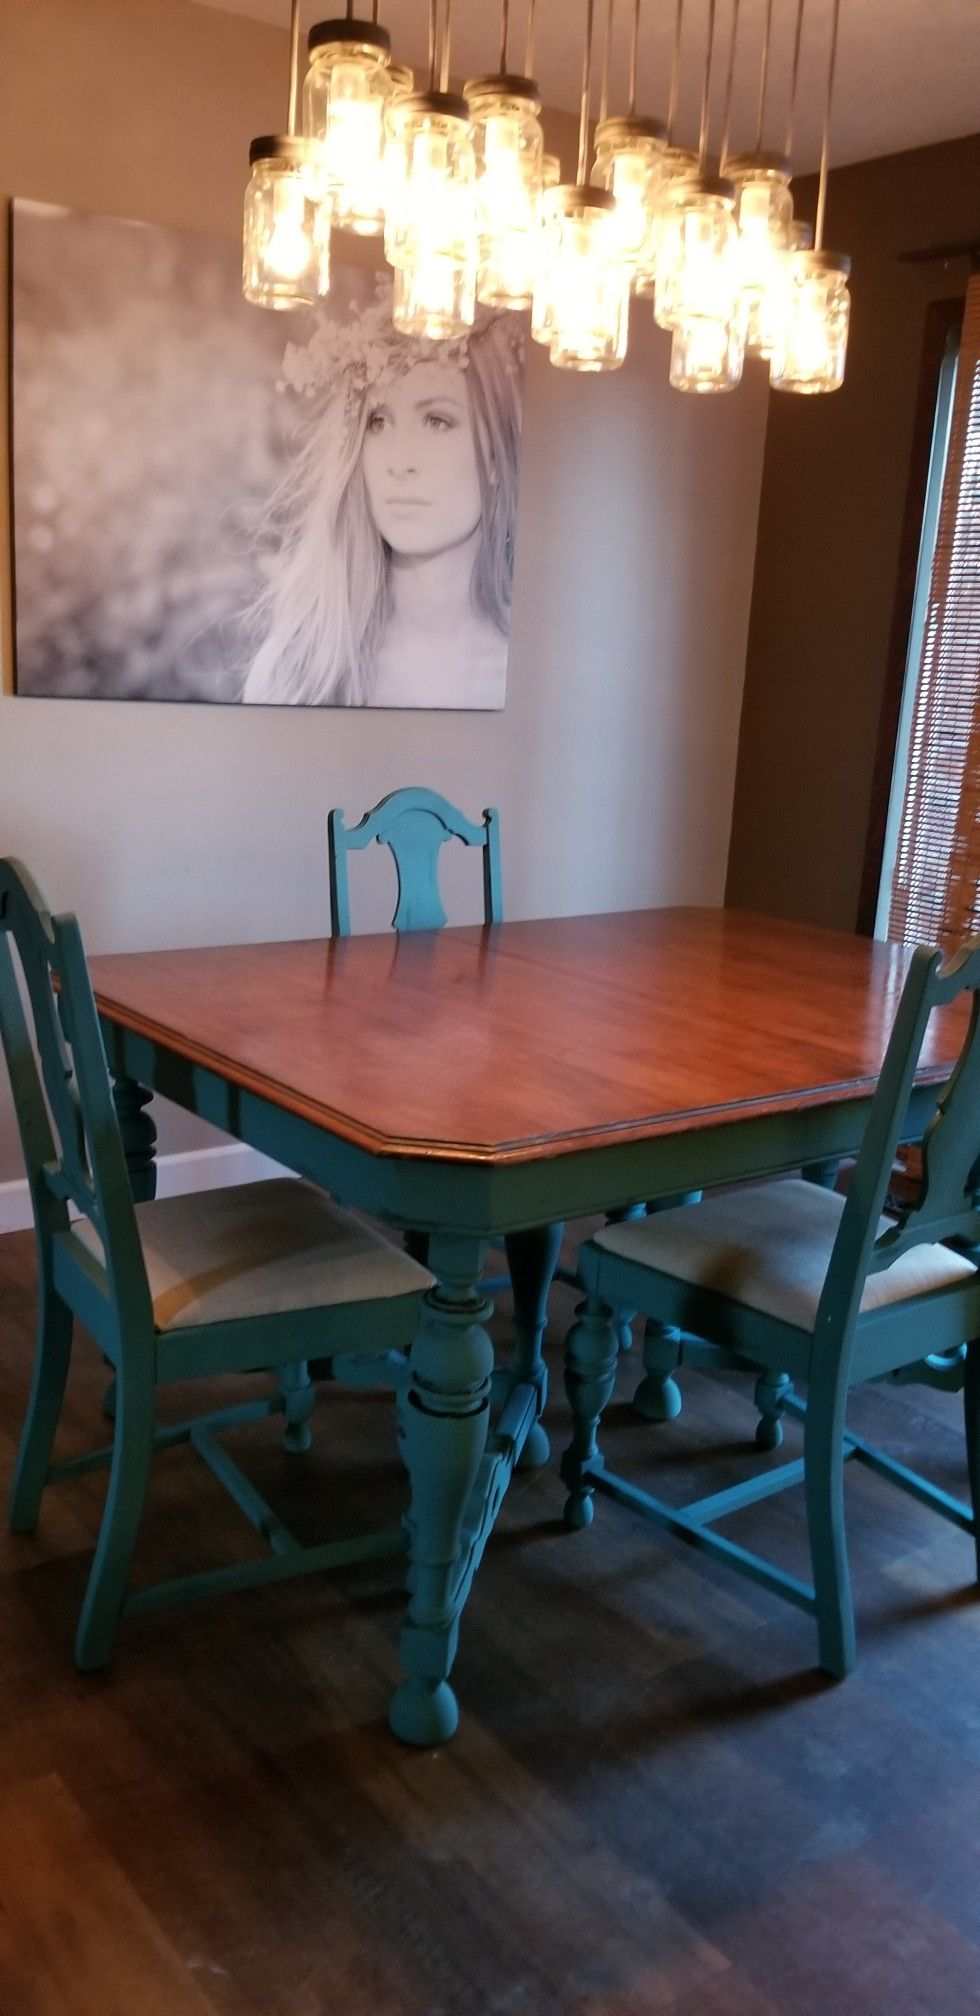 Diy Chalk Paint Blue Dining Room Table Chairs Dining Room Blue Chalk Paint Dining Room Table Diy Dining Room Table